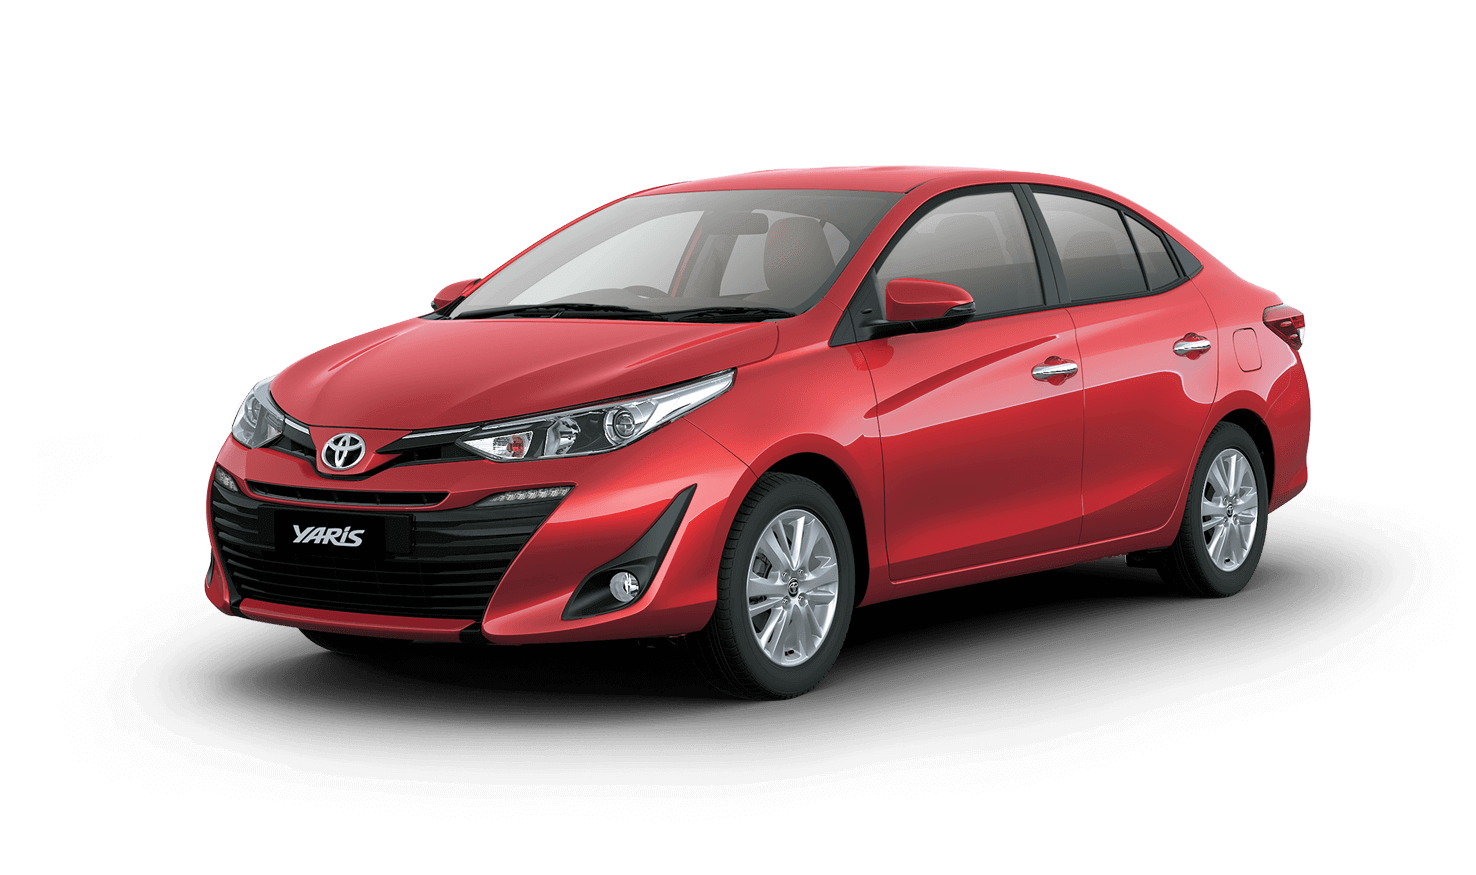 Toyota Yaris Colors: Red, White, Grey, Brown, Silver